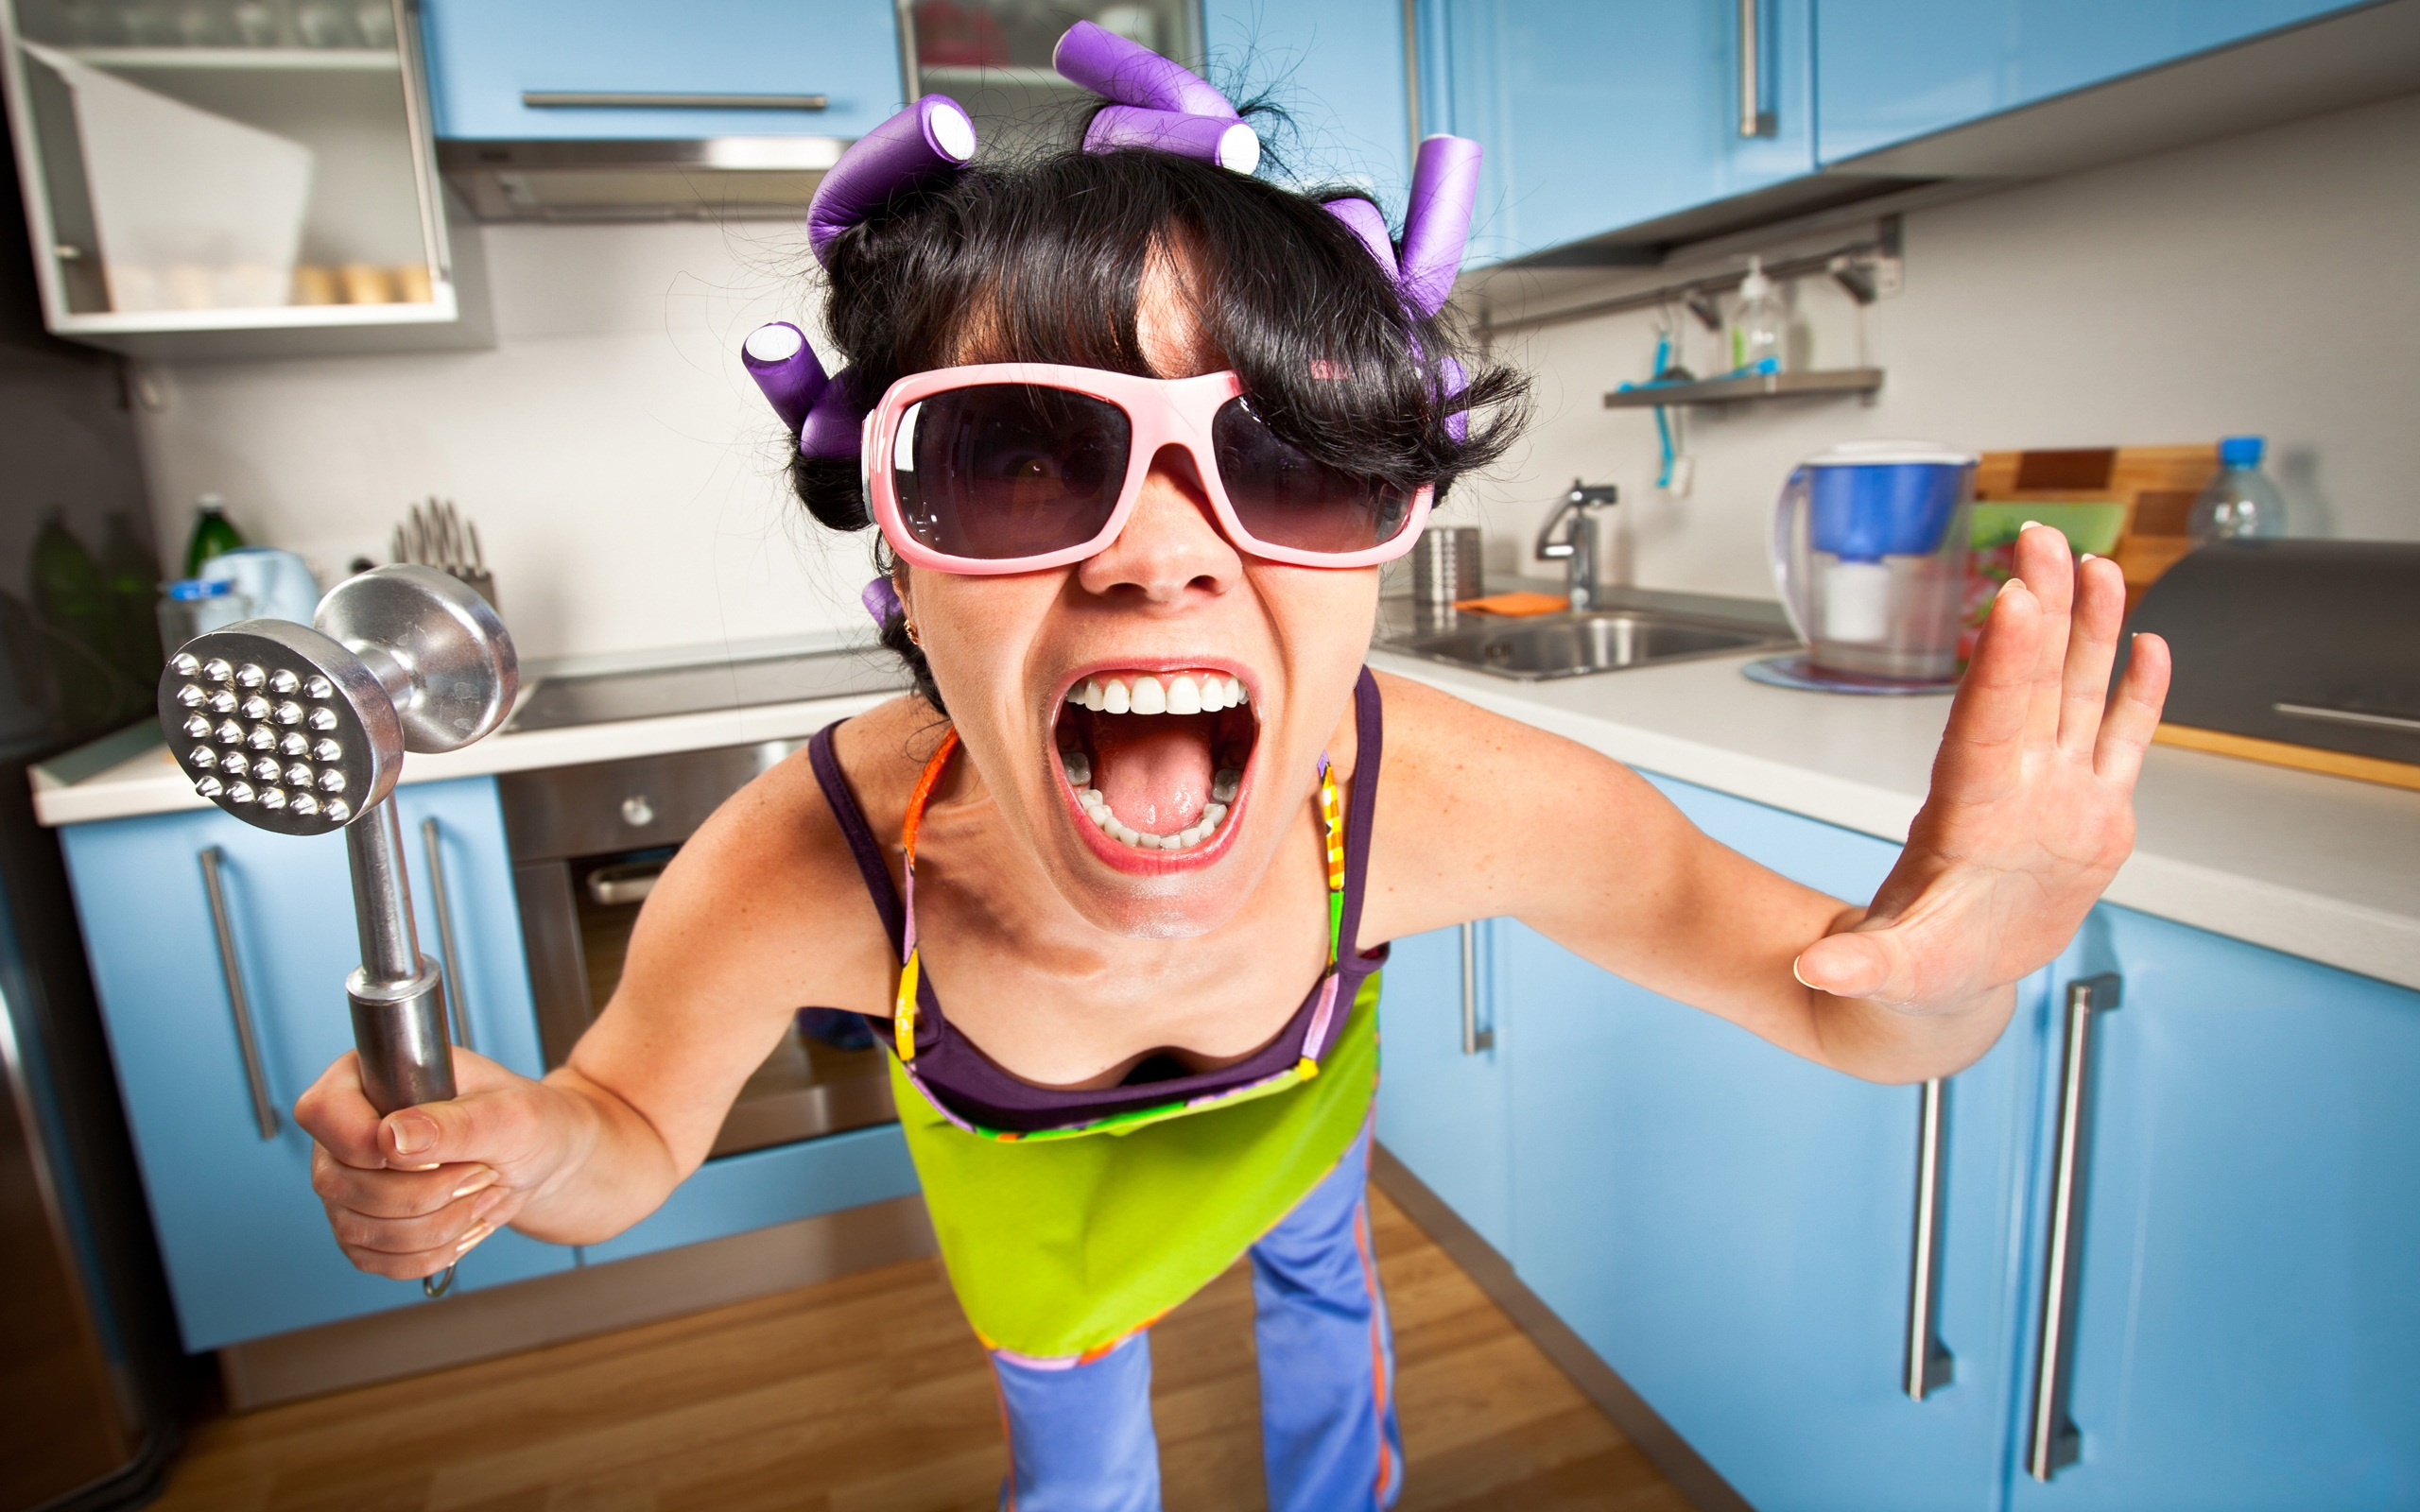 Crazy-Mad-Housewife-In-The-Kitchen-HD-Wallpaper